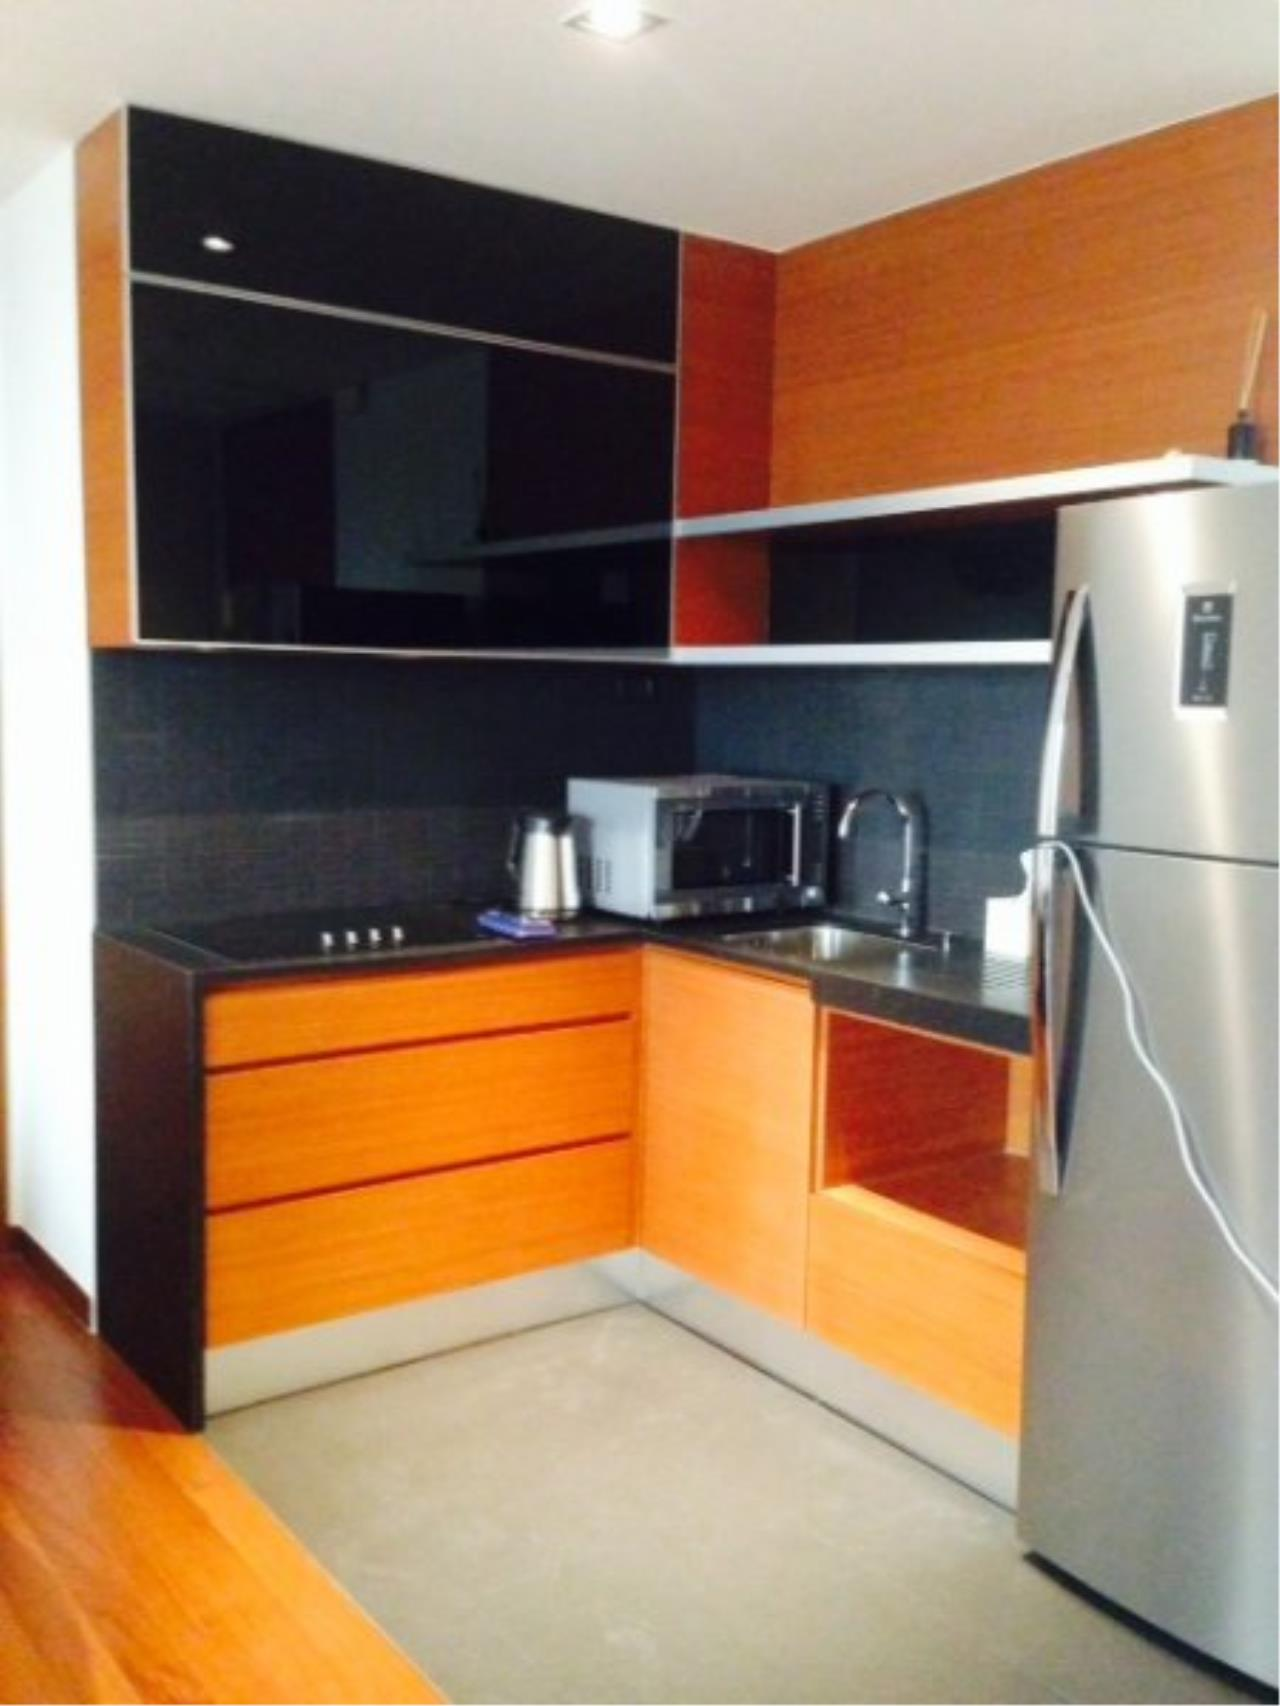 Piri Property Agency's Bright 2 Bedrooms Condo in the Ashton Building for rent on high floor 6